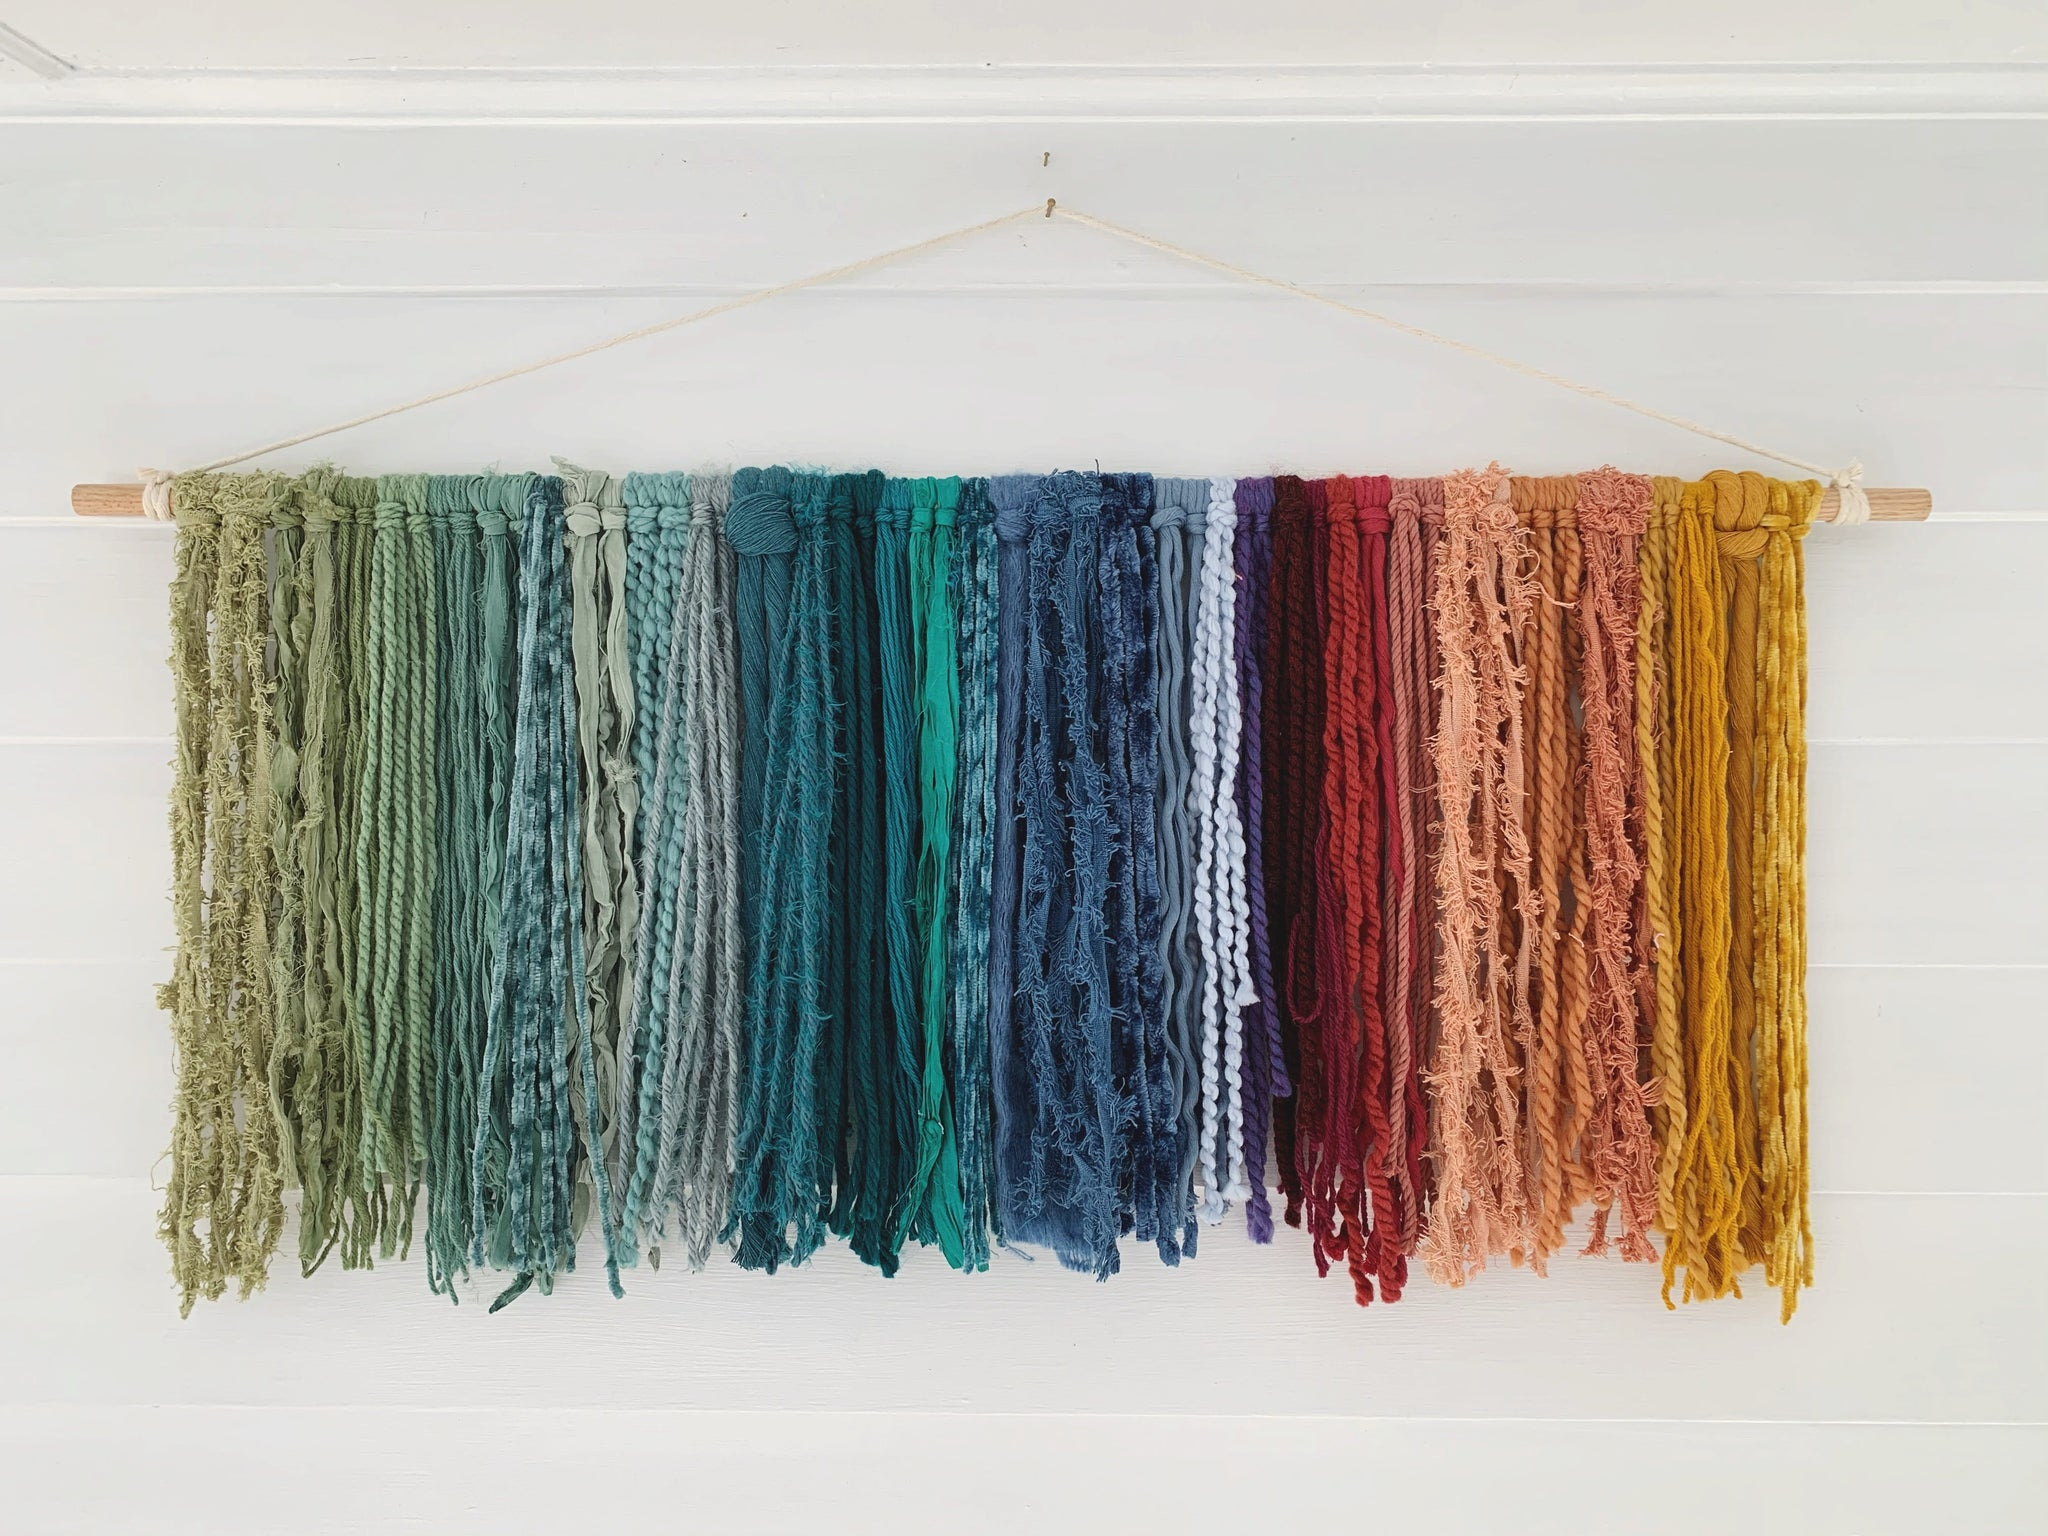 Large Rainbow Fiber Hanging (4ft x 1ft)